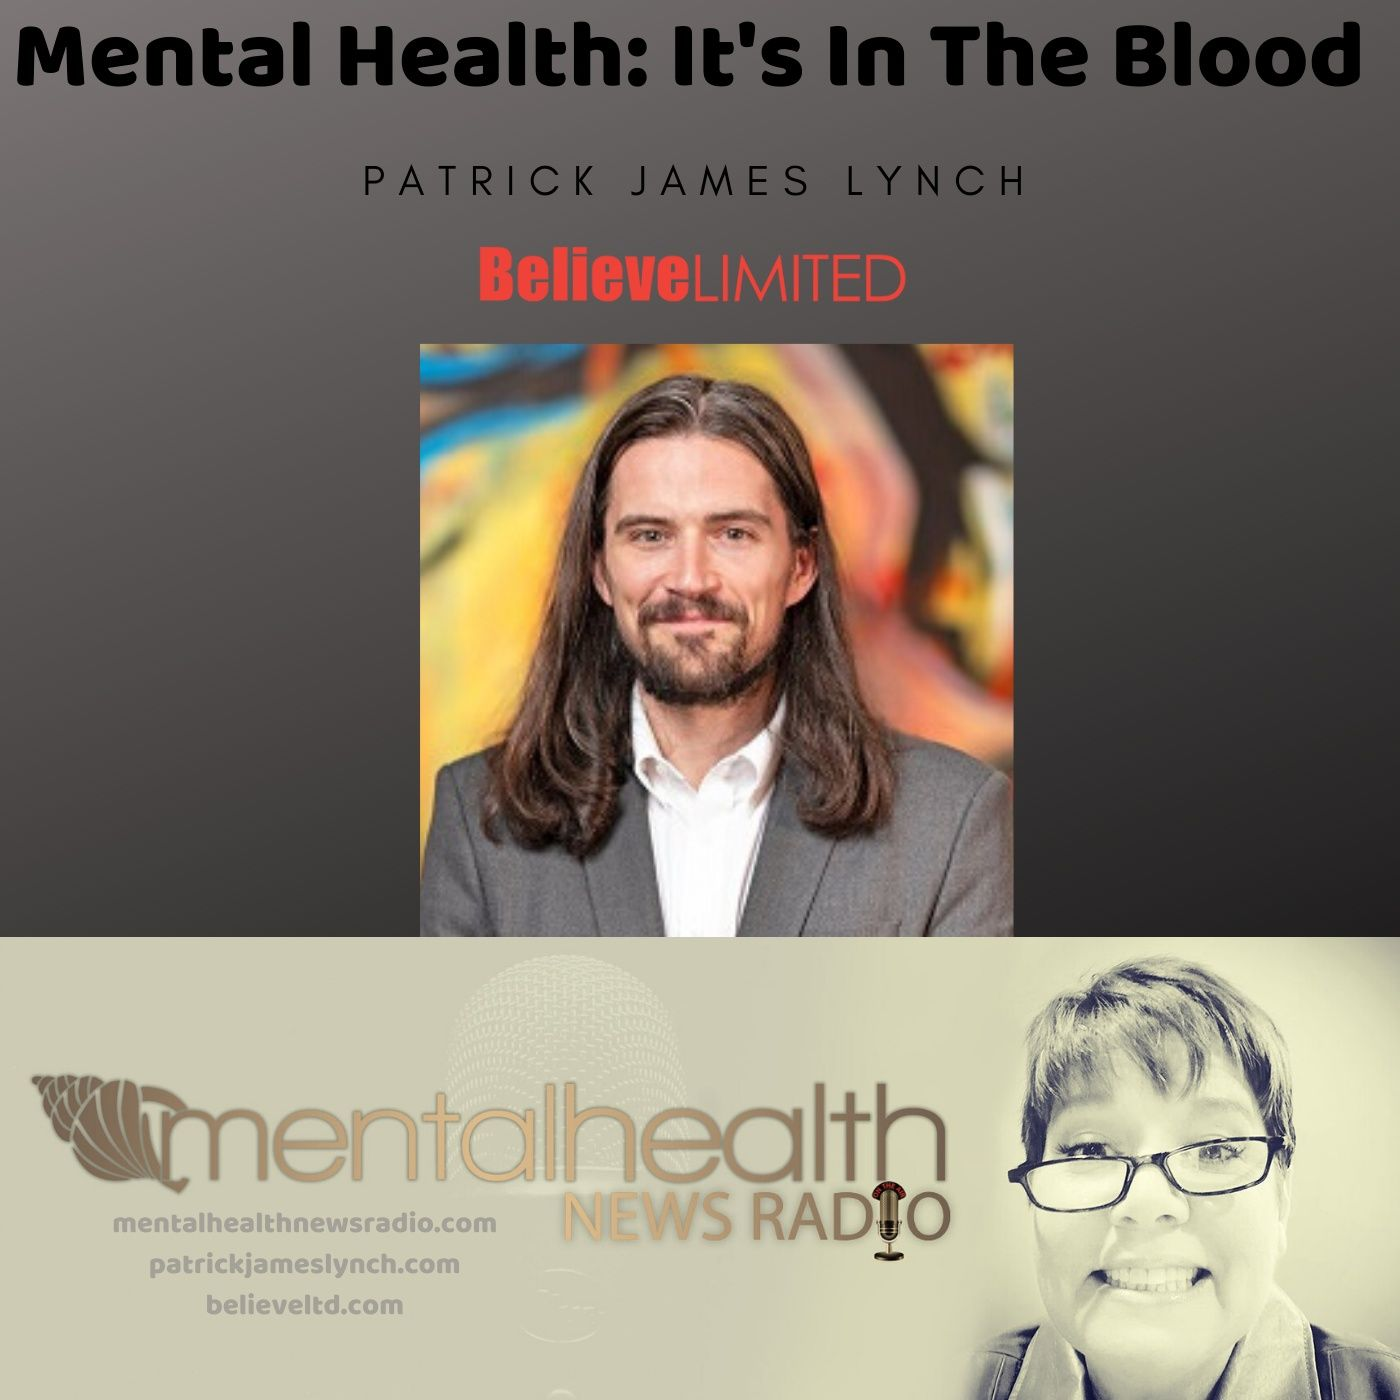 Mental Health News Radio - Mental Health: It's In the Blood with Patrick James Lynch